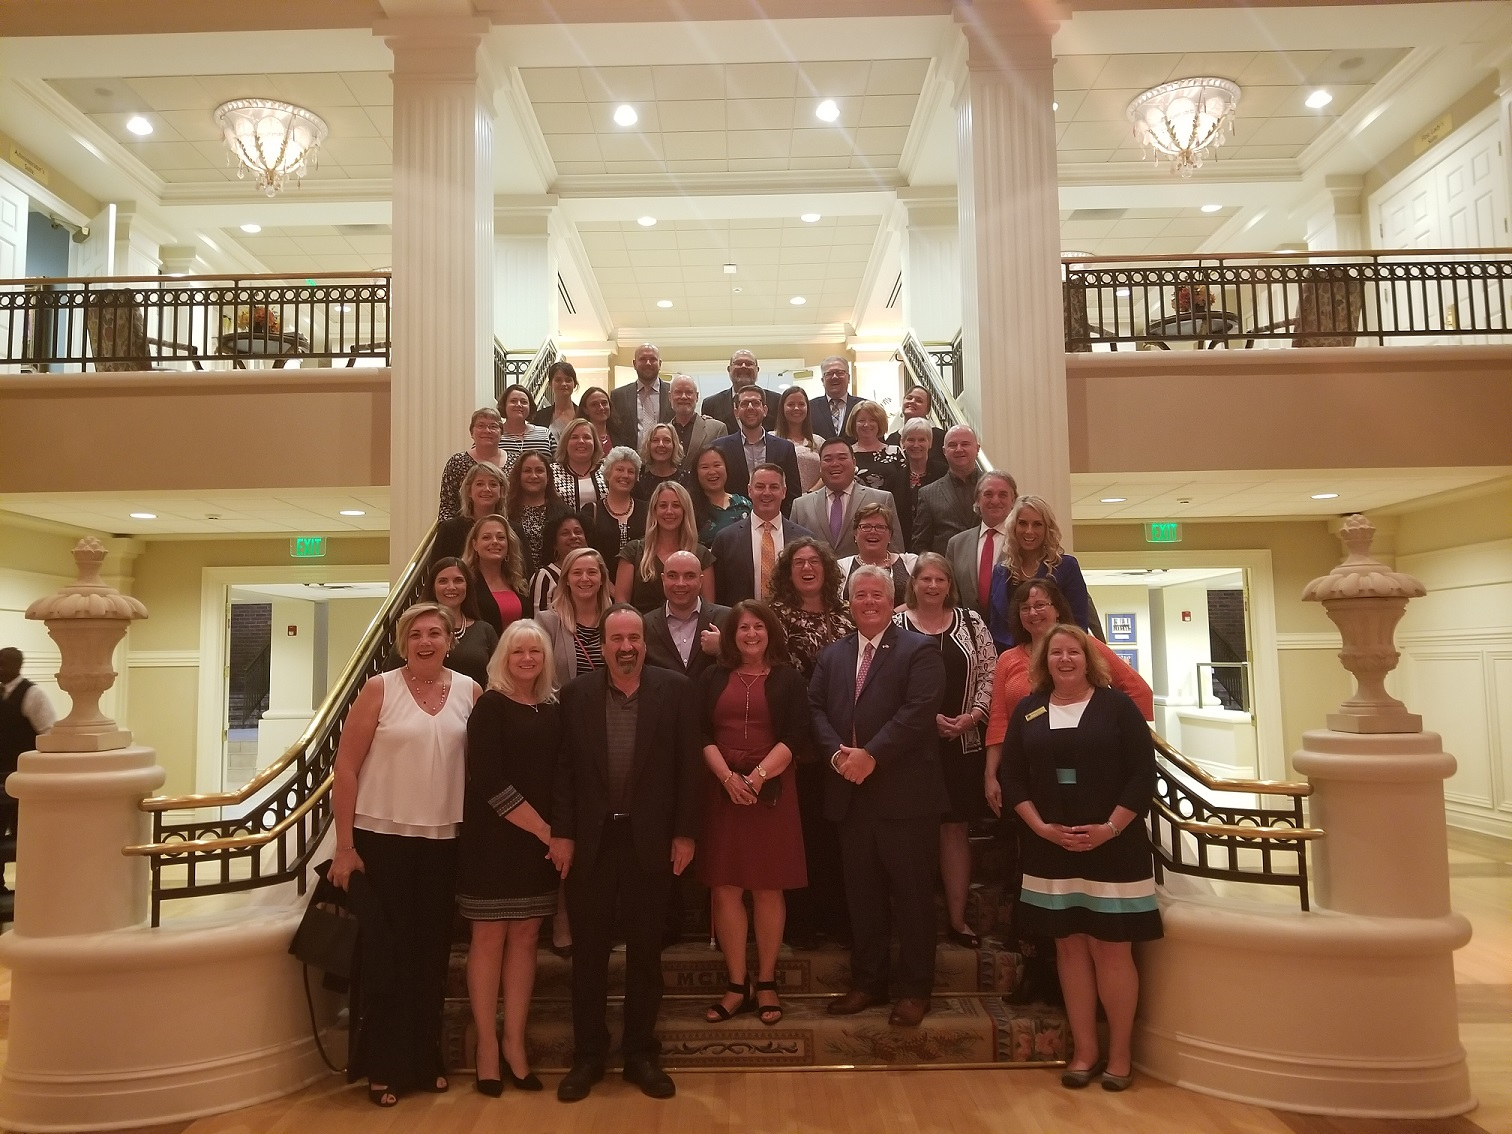 Council Executive Directors gather for a picture on steps at the Governor's Mansion in Little Rock, AR